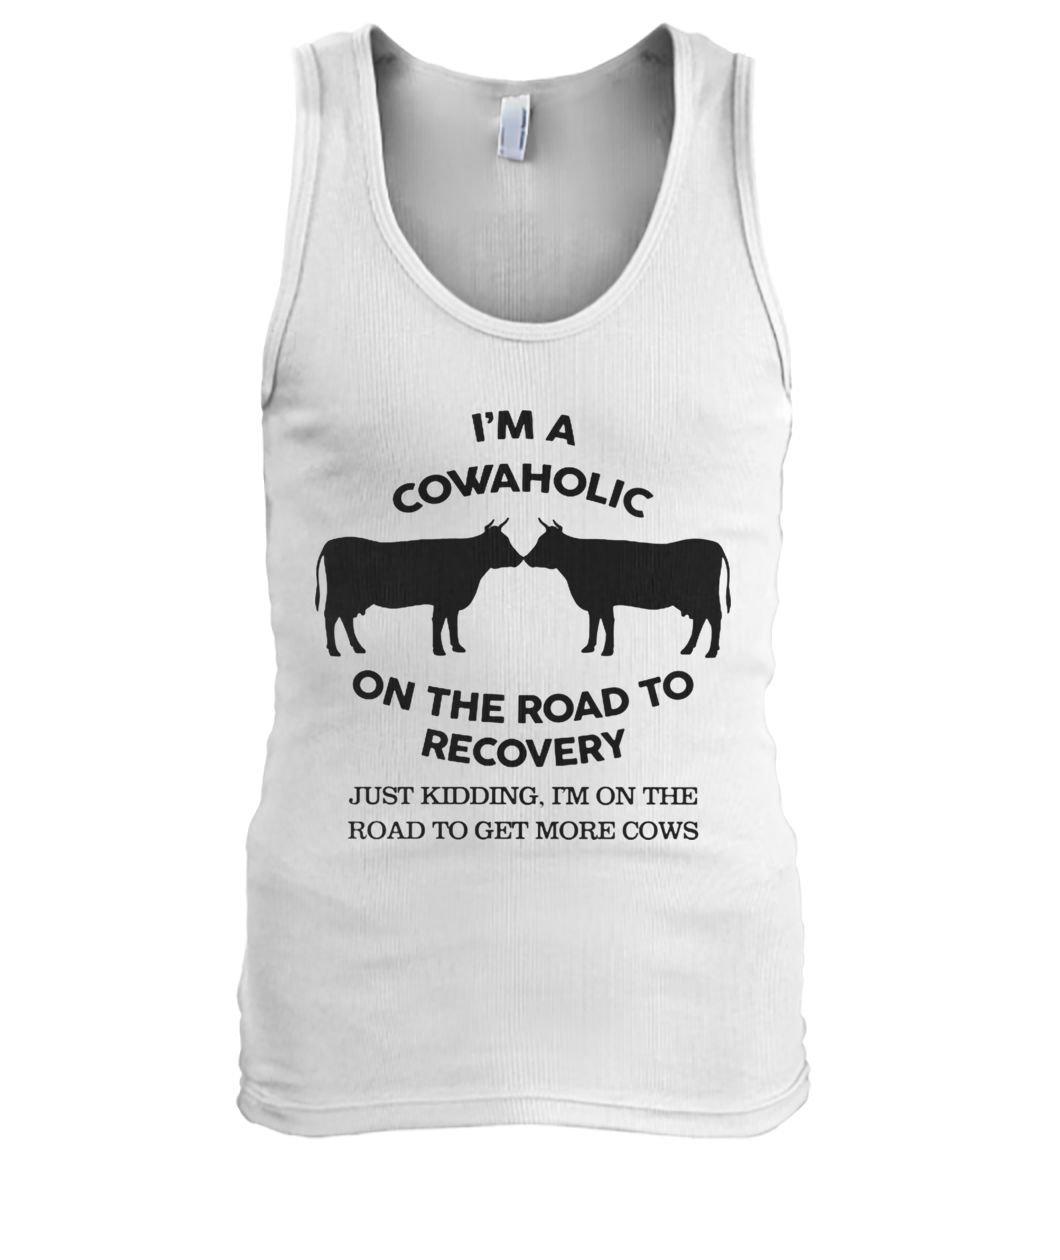 I'm a cowaholic on the road to recovery men's tank top